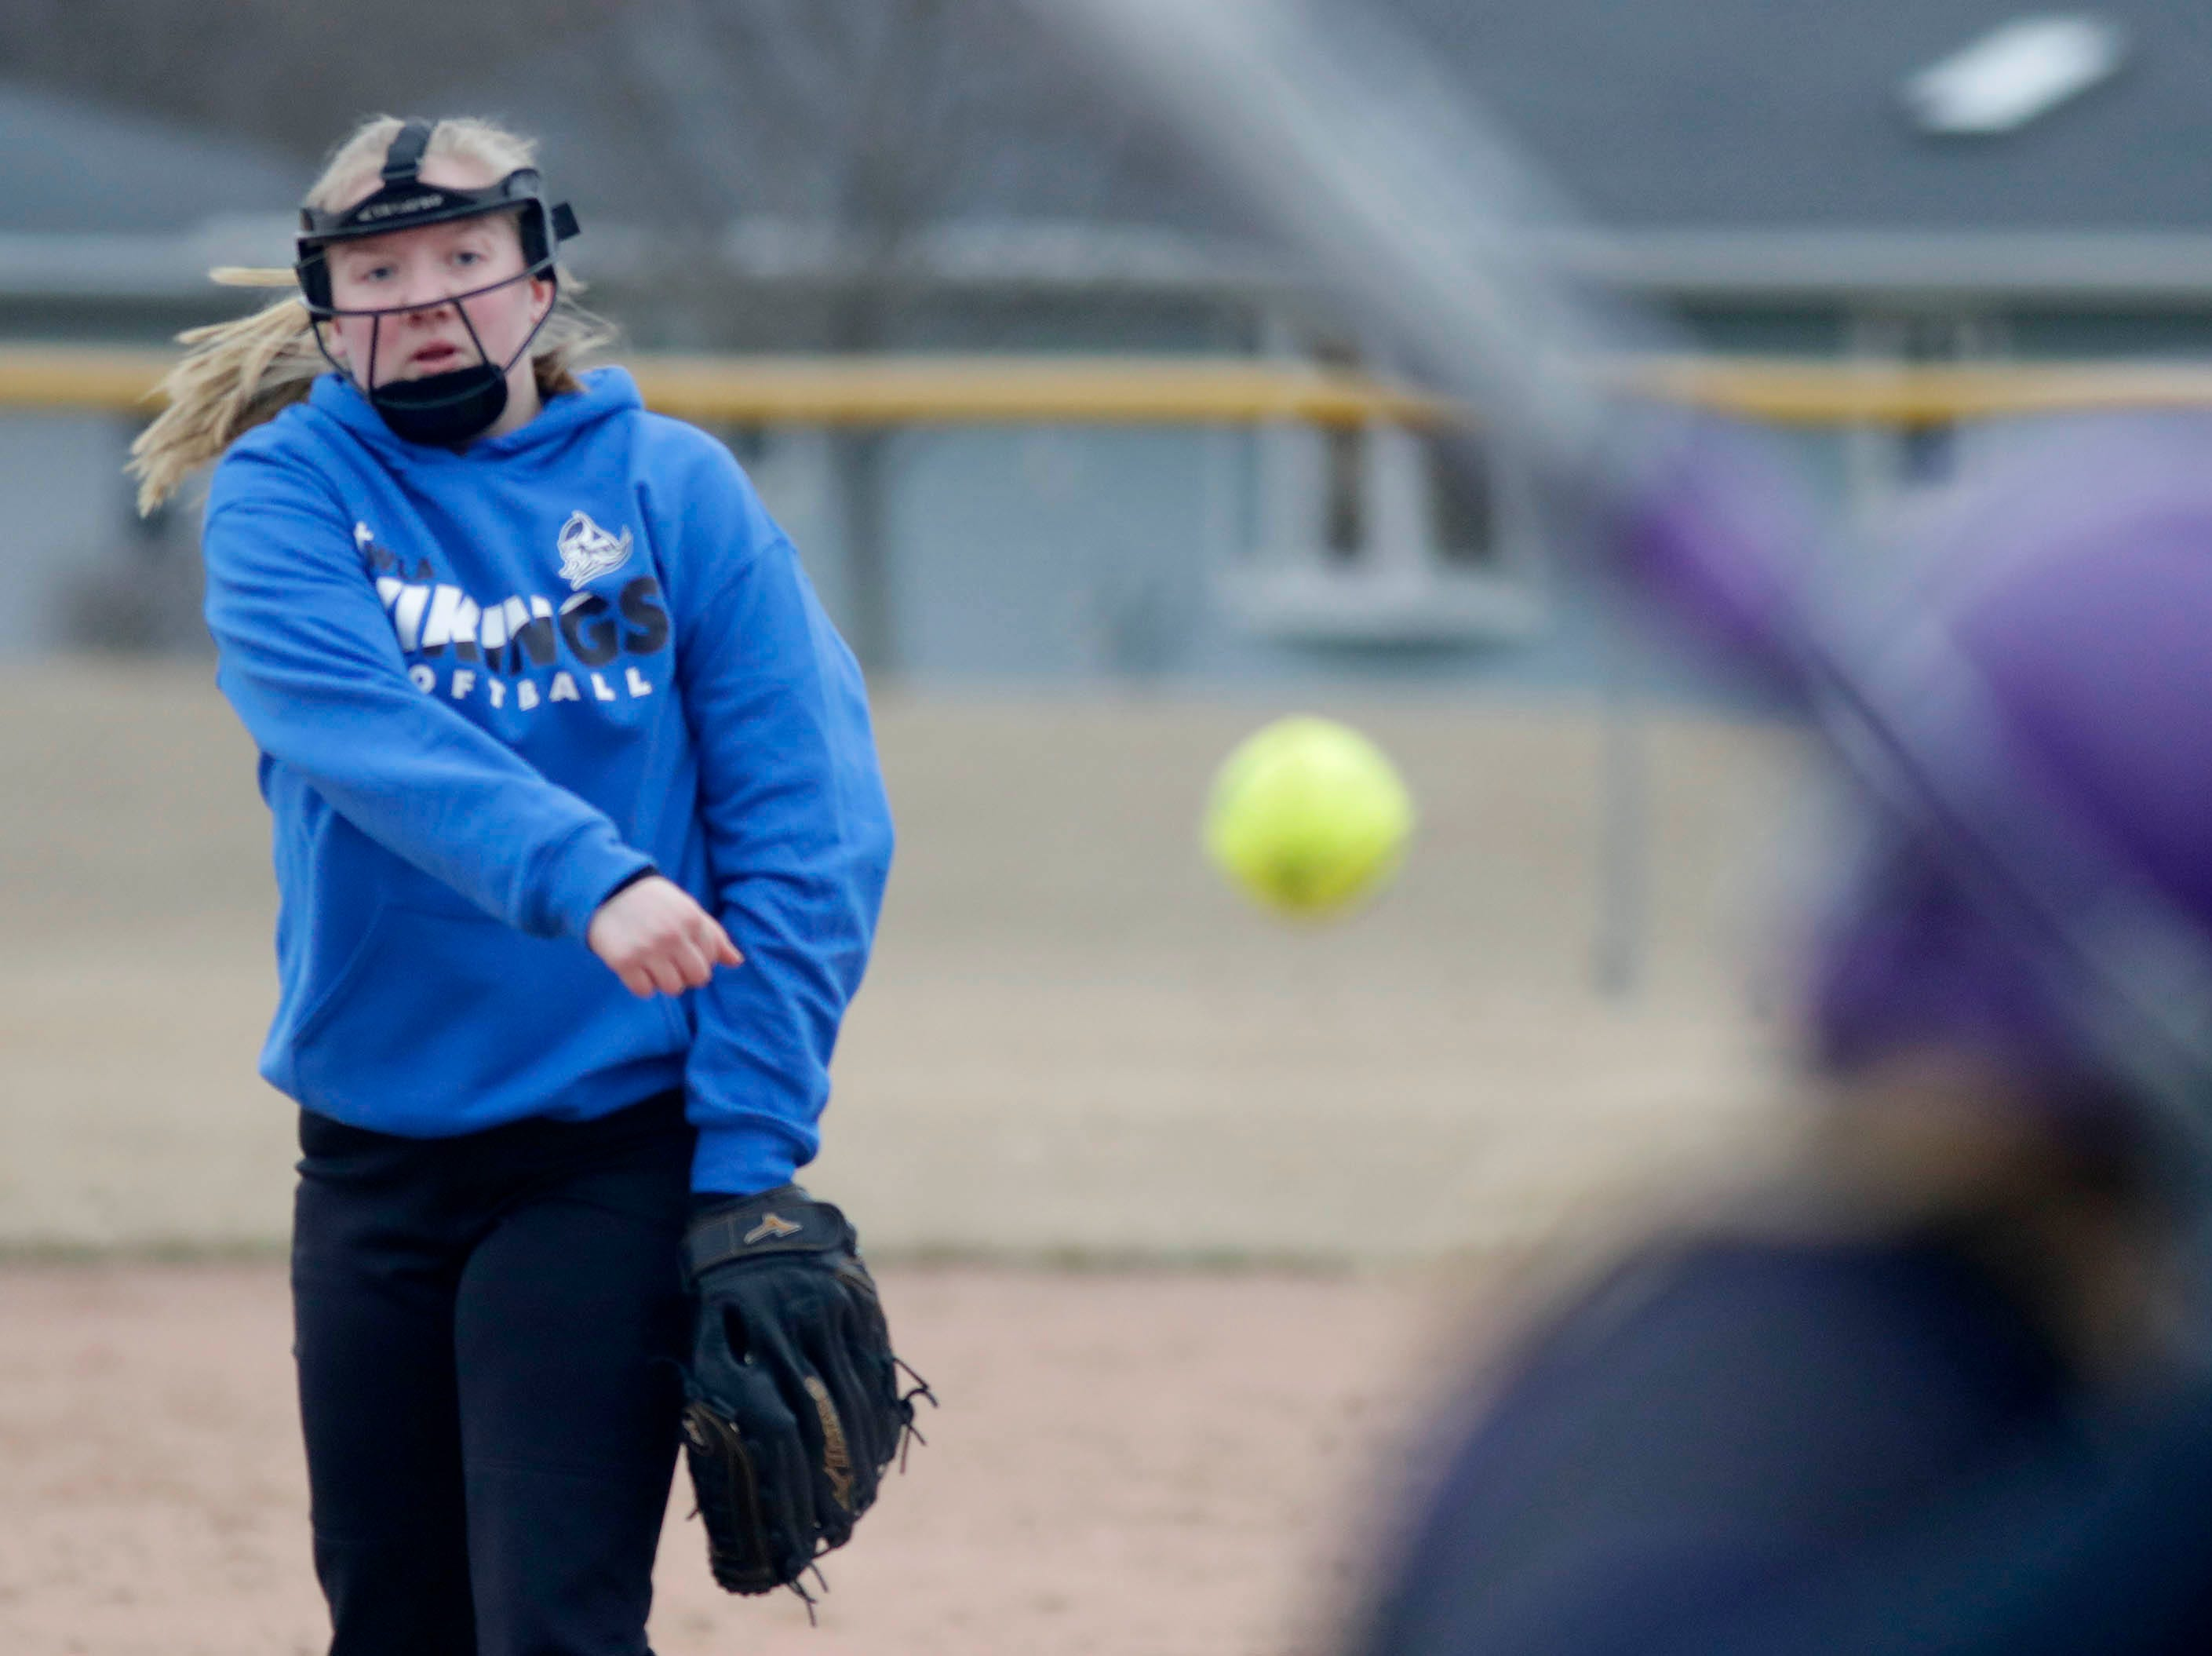 Winnebago Lutheran's Kylie Guell (1) winds up a pitch to a Kiel player at the Youth Baseball Complex, Thursday, March 28, 2019, in Fond du Lac, Wis.